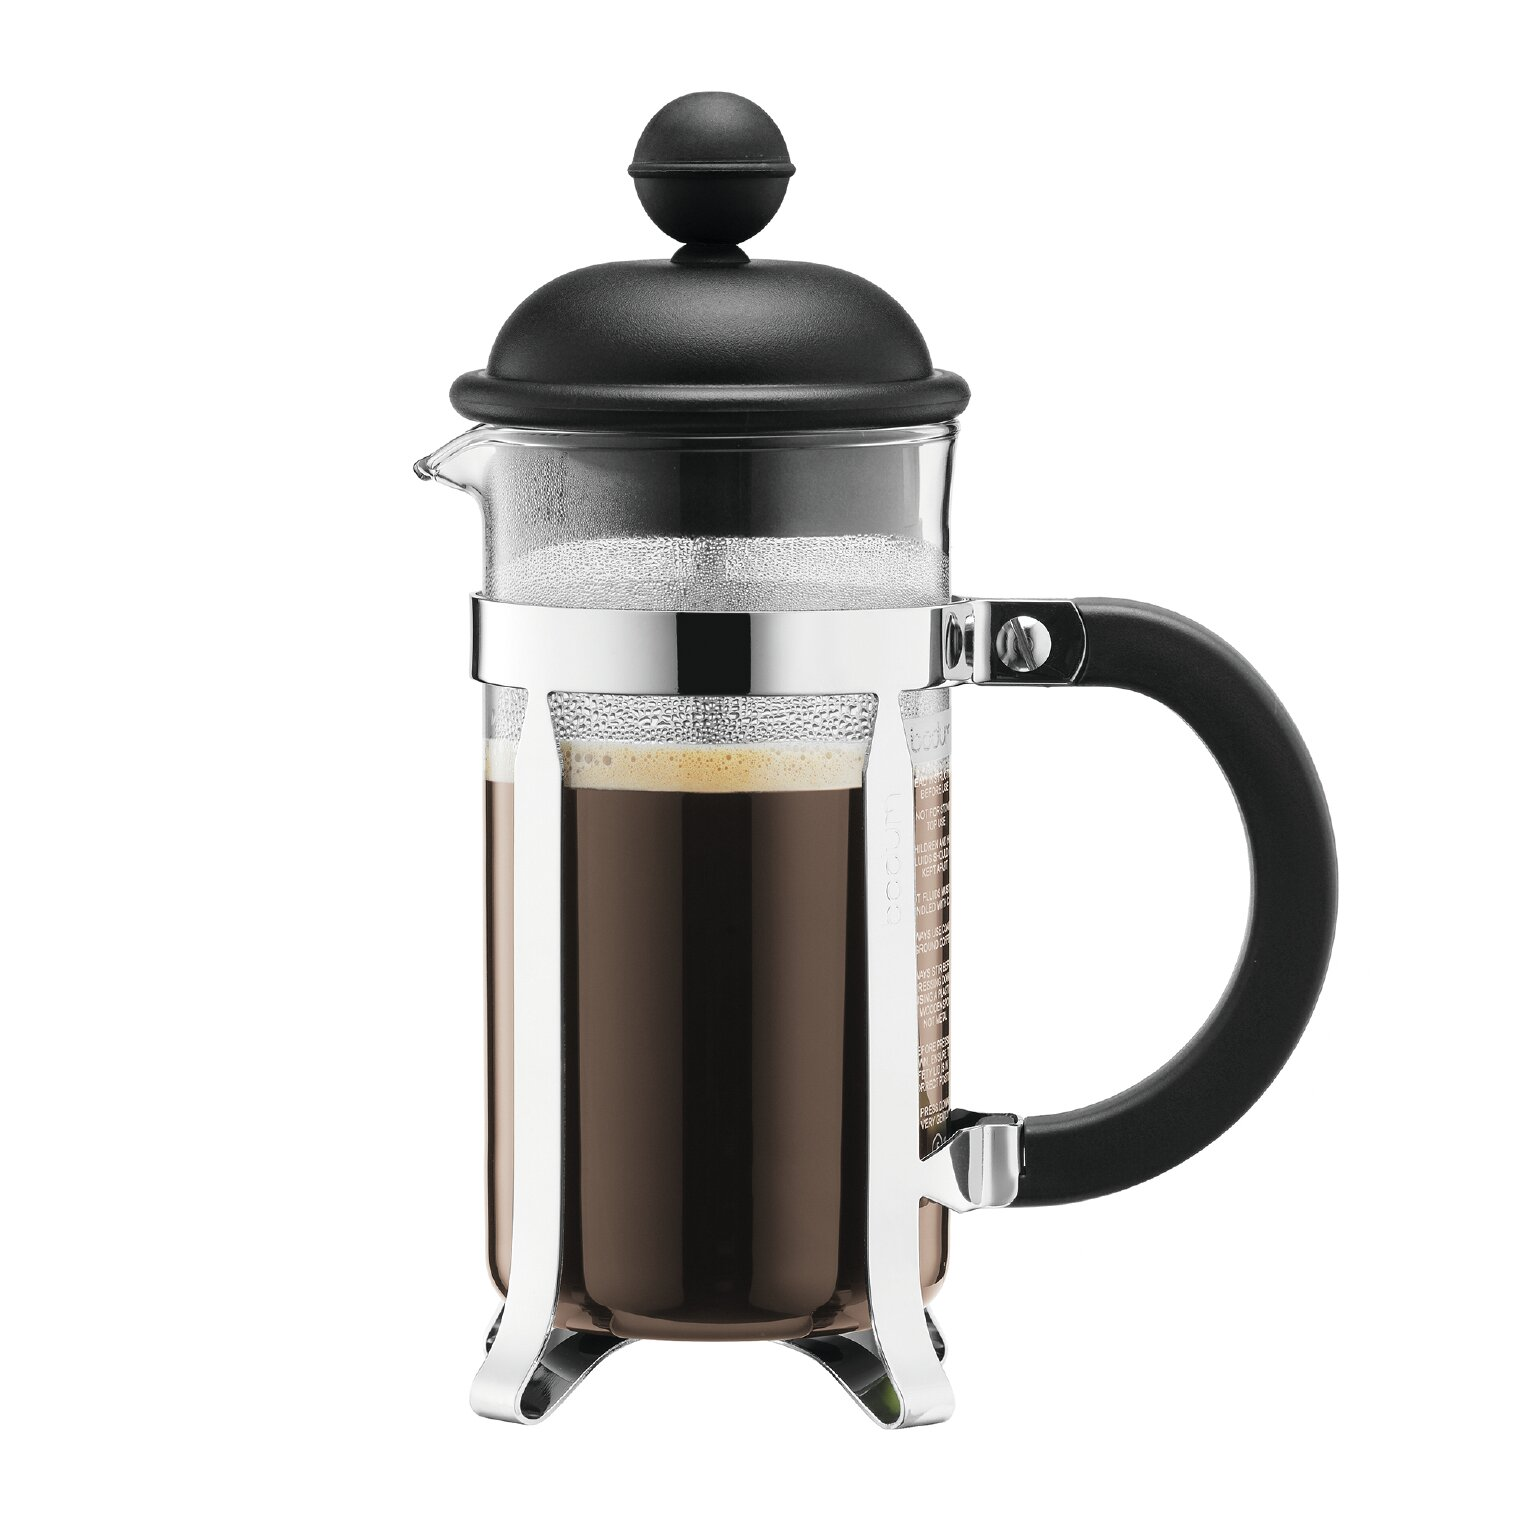 Bed bath beyond french press - Caffettiera French Press Coffee Maker